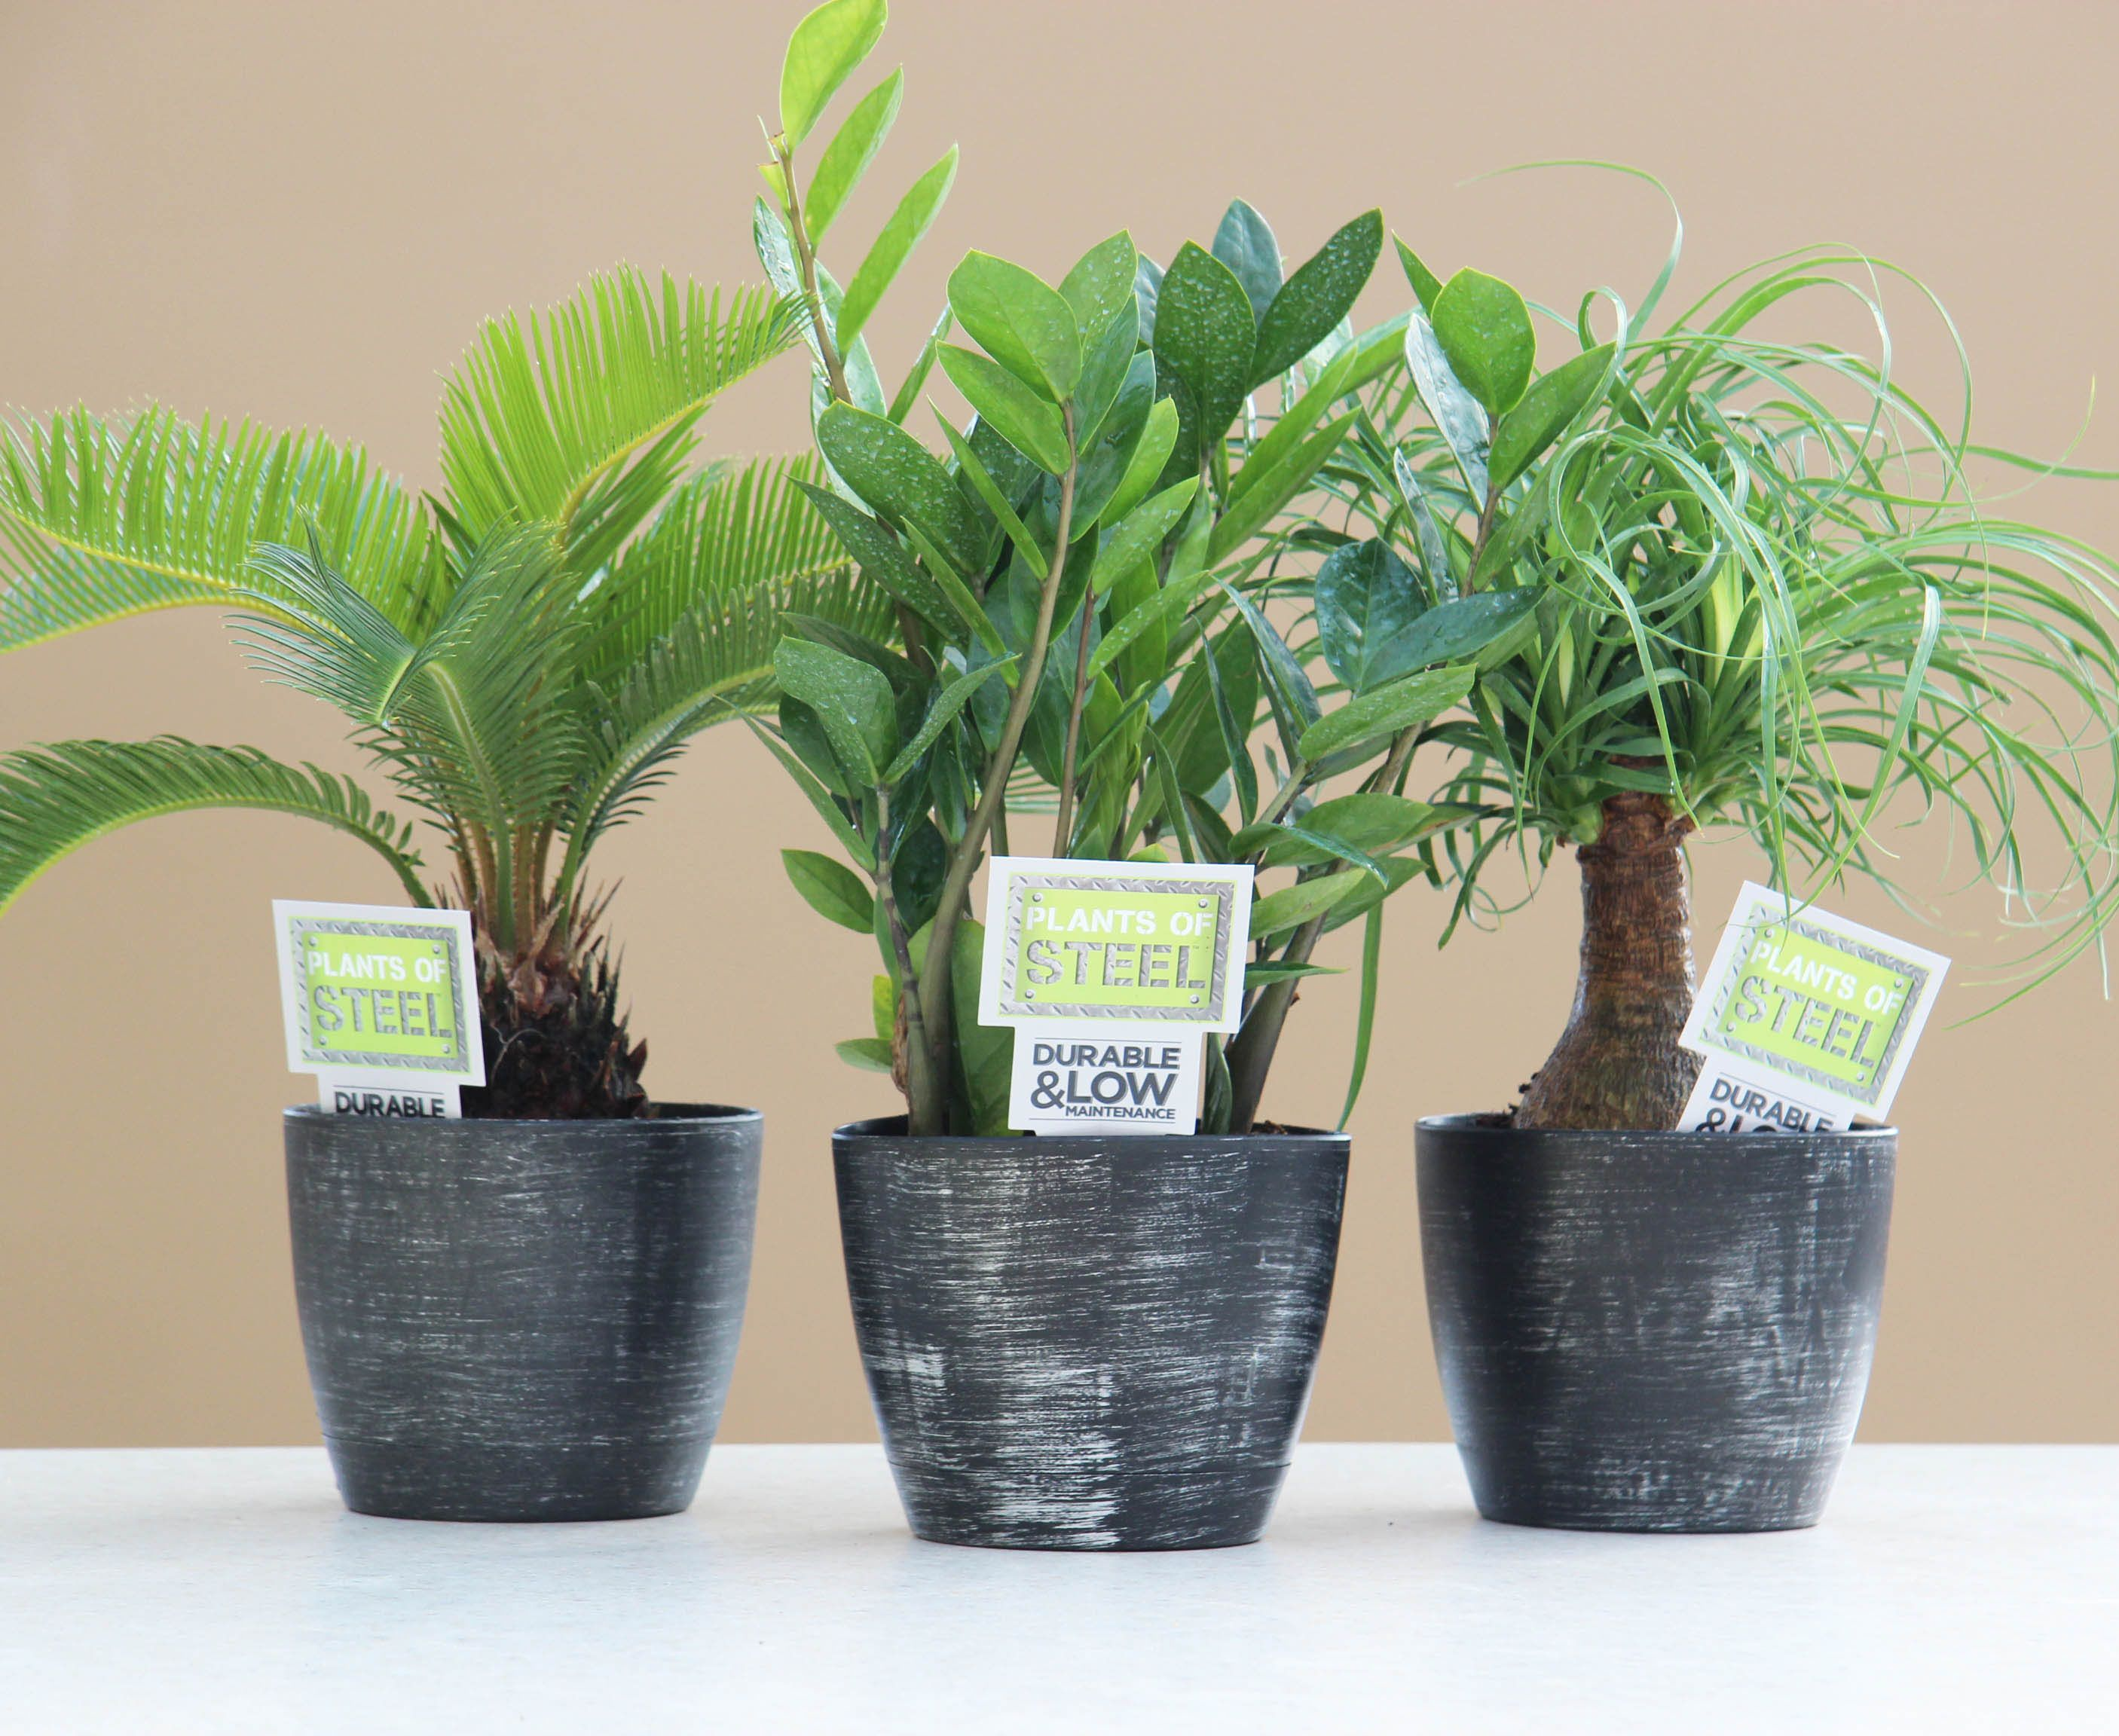 Plants of steel easy to care for house plants tropical for Easy to take care of indoor plants